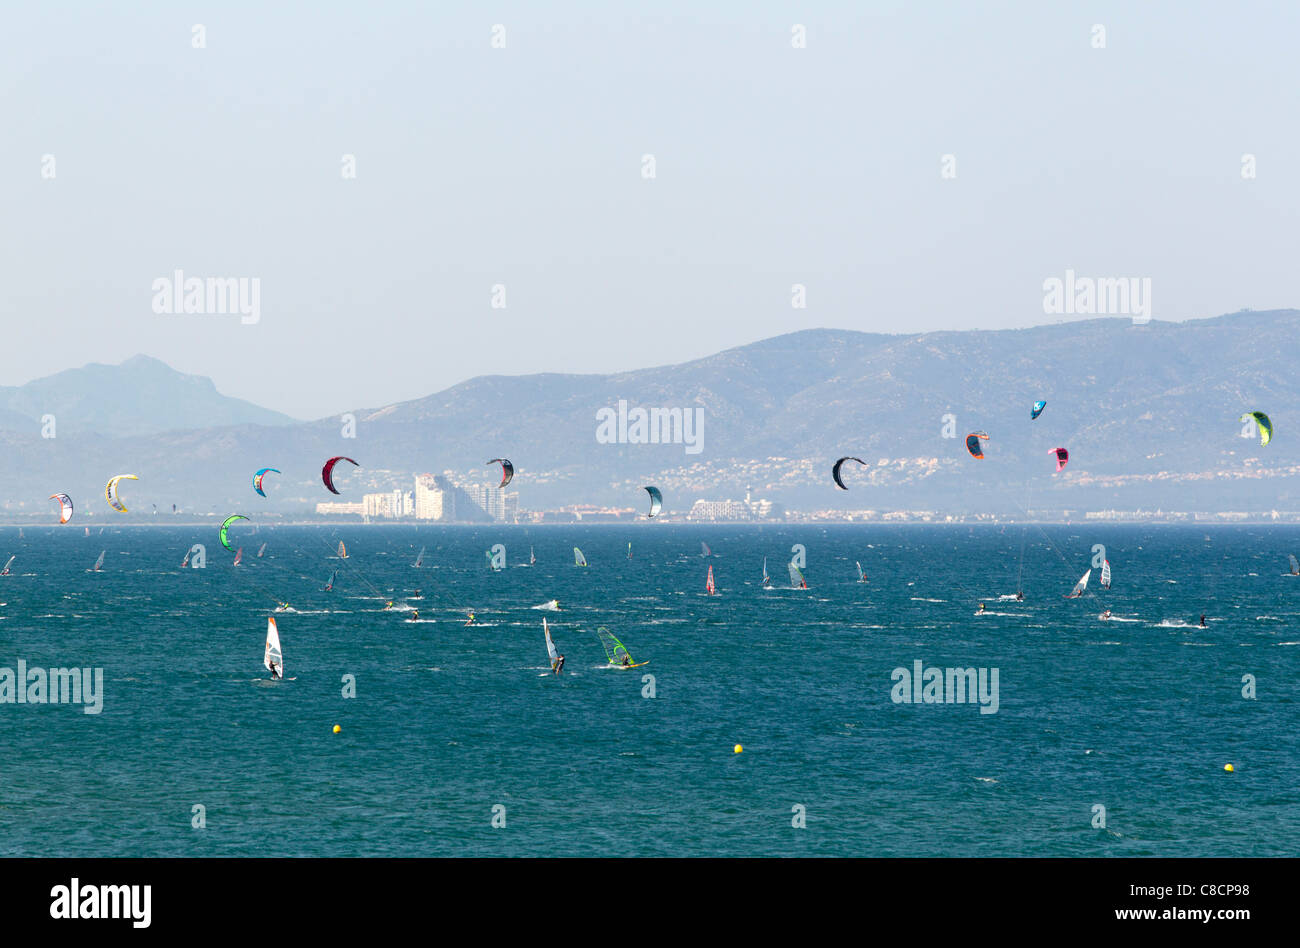 Kitesurfers and windsurfers at Sant Pere de Pescador, Costa Brava, Spain - Stock Image